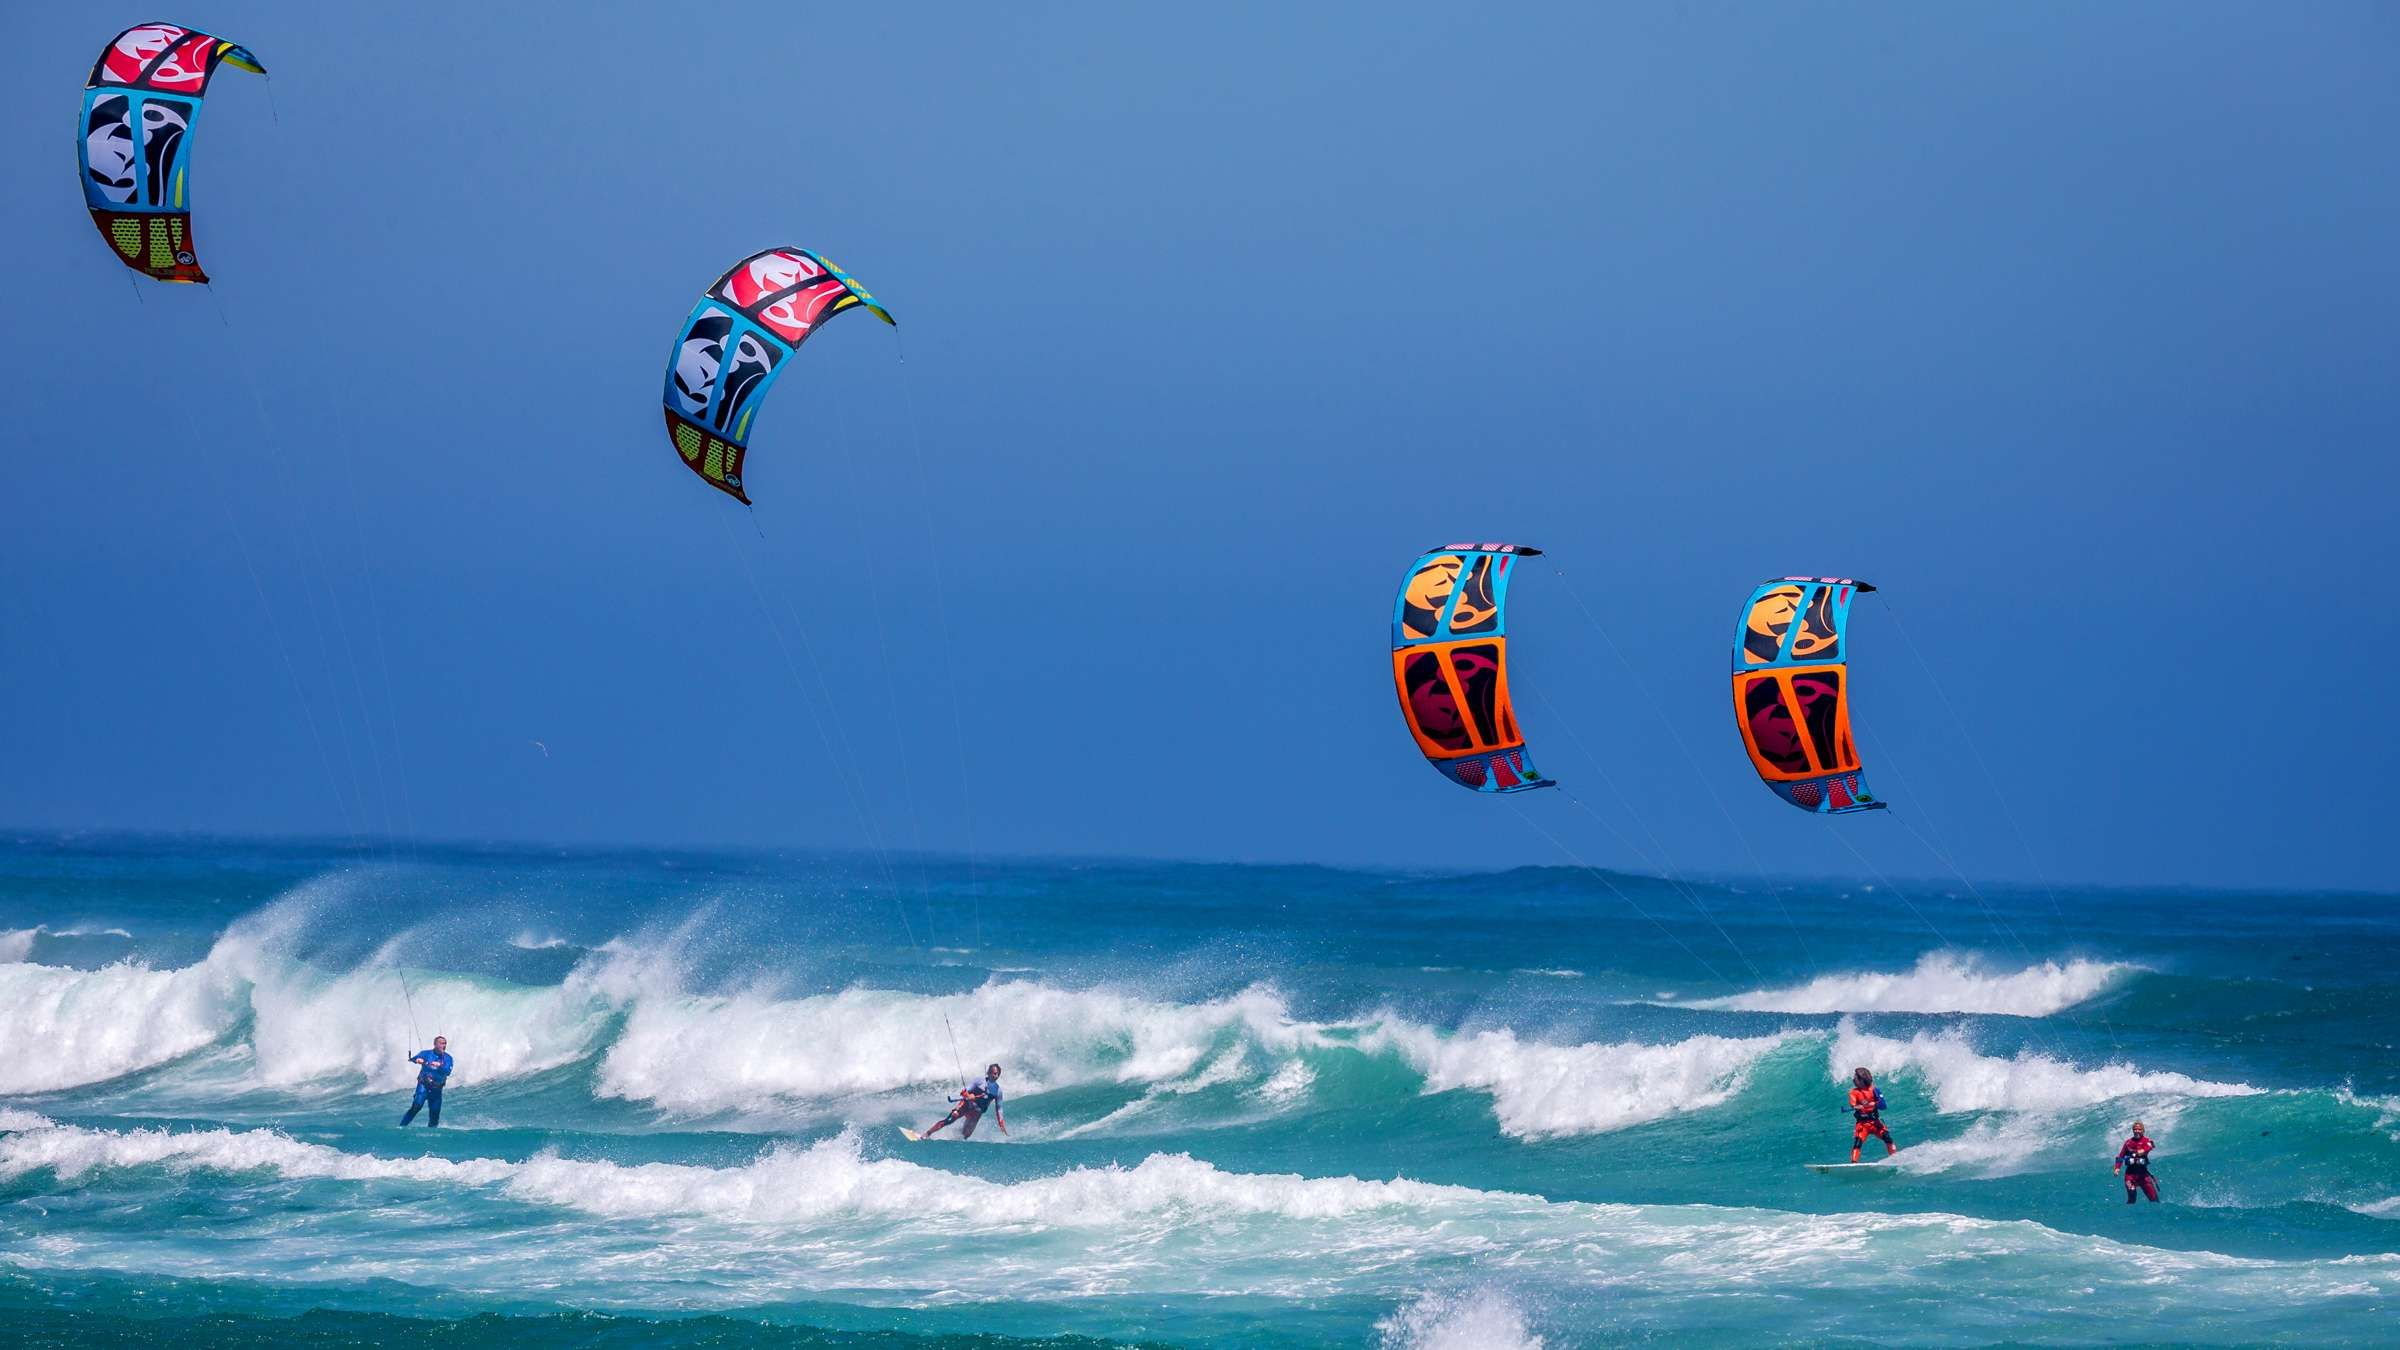 2400x1350 - Kitesurfing Wallpapers 15